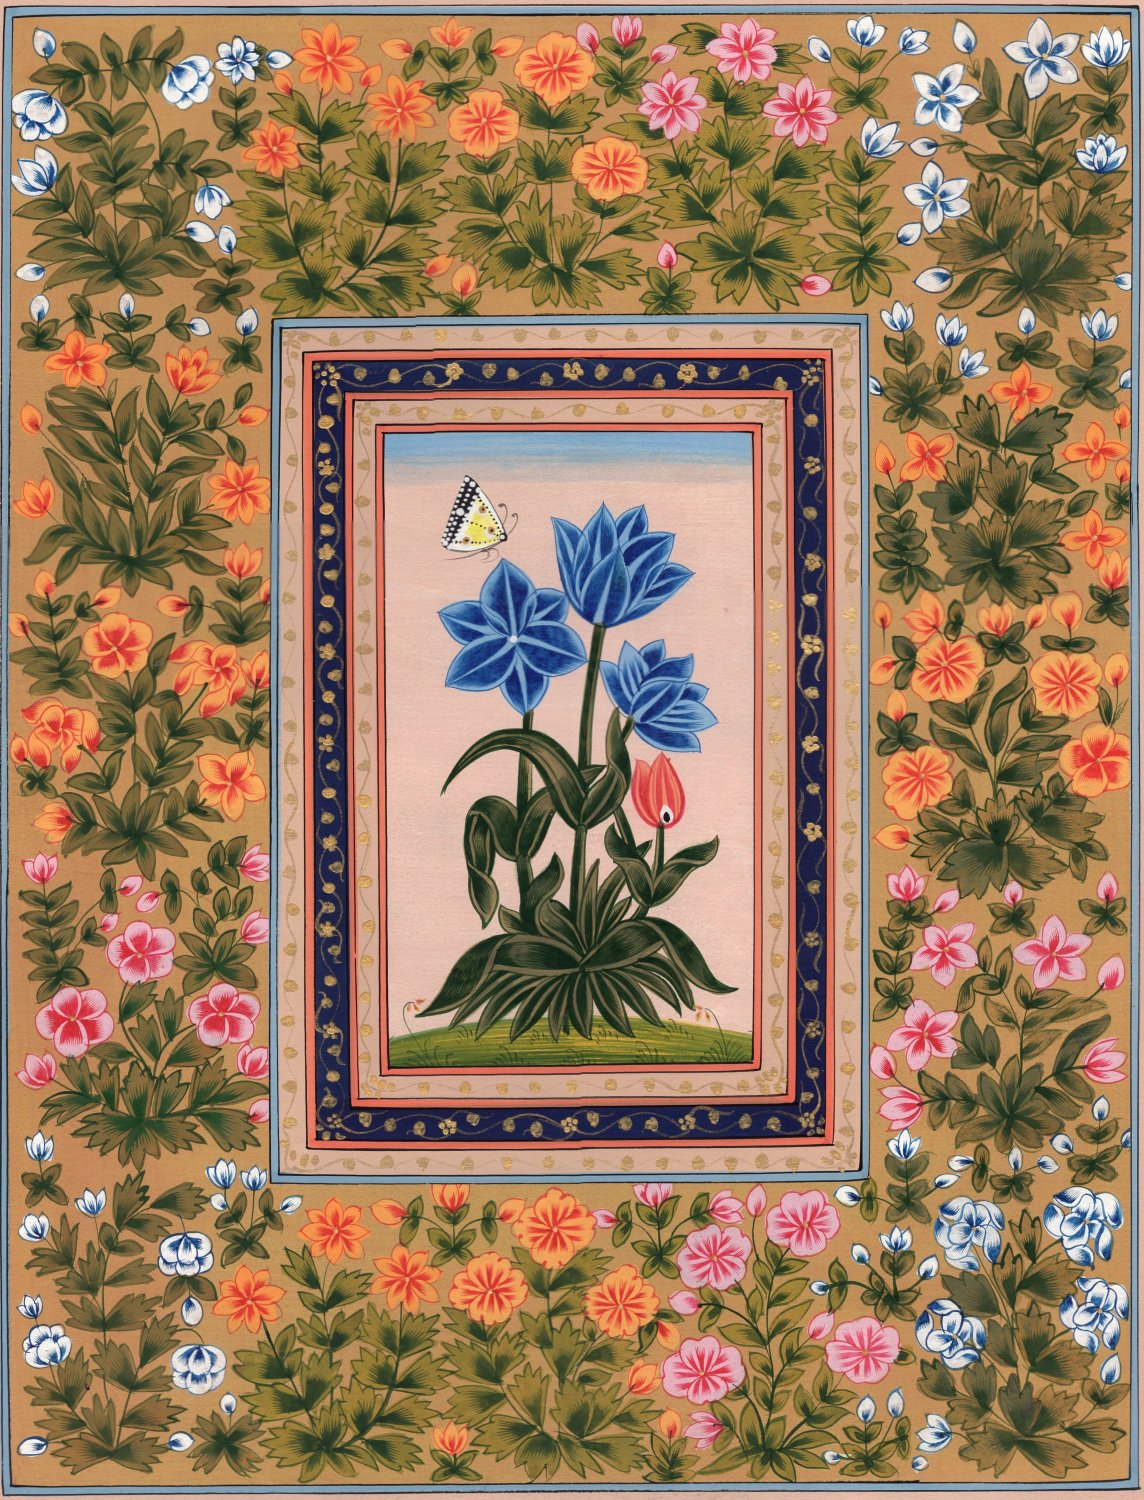 Mughal Floral Art Handmade Mogul Indian Flower Miniature Nature Floral Painting